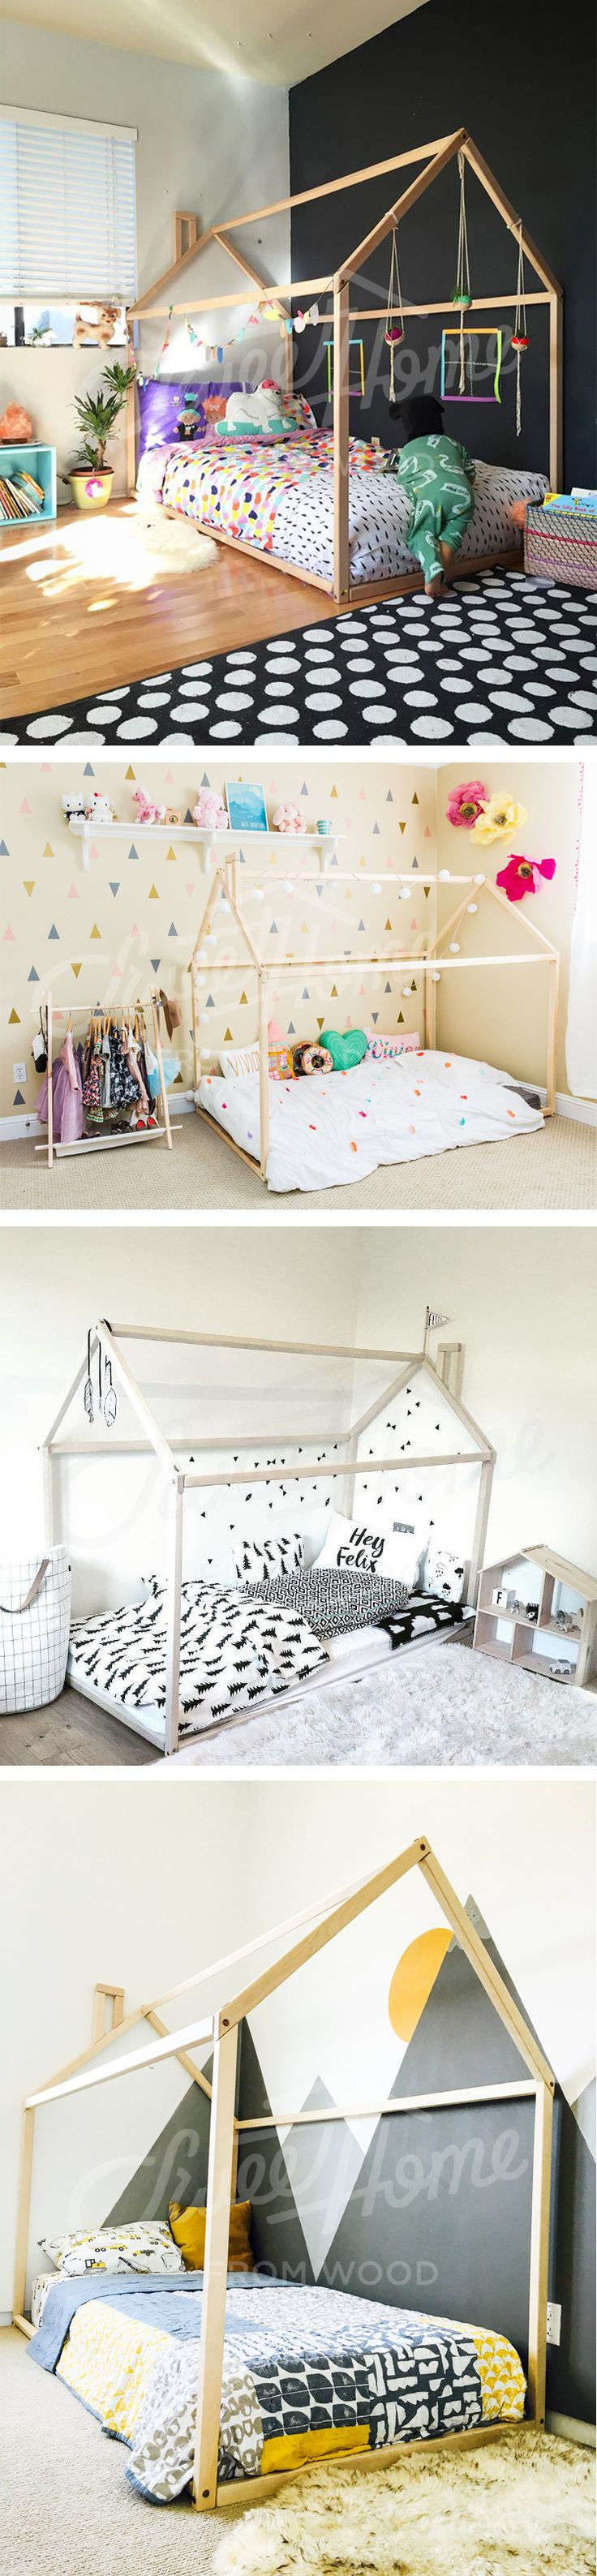 Amazoncom GreenForest Metal Bed Frame Twin Size Two